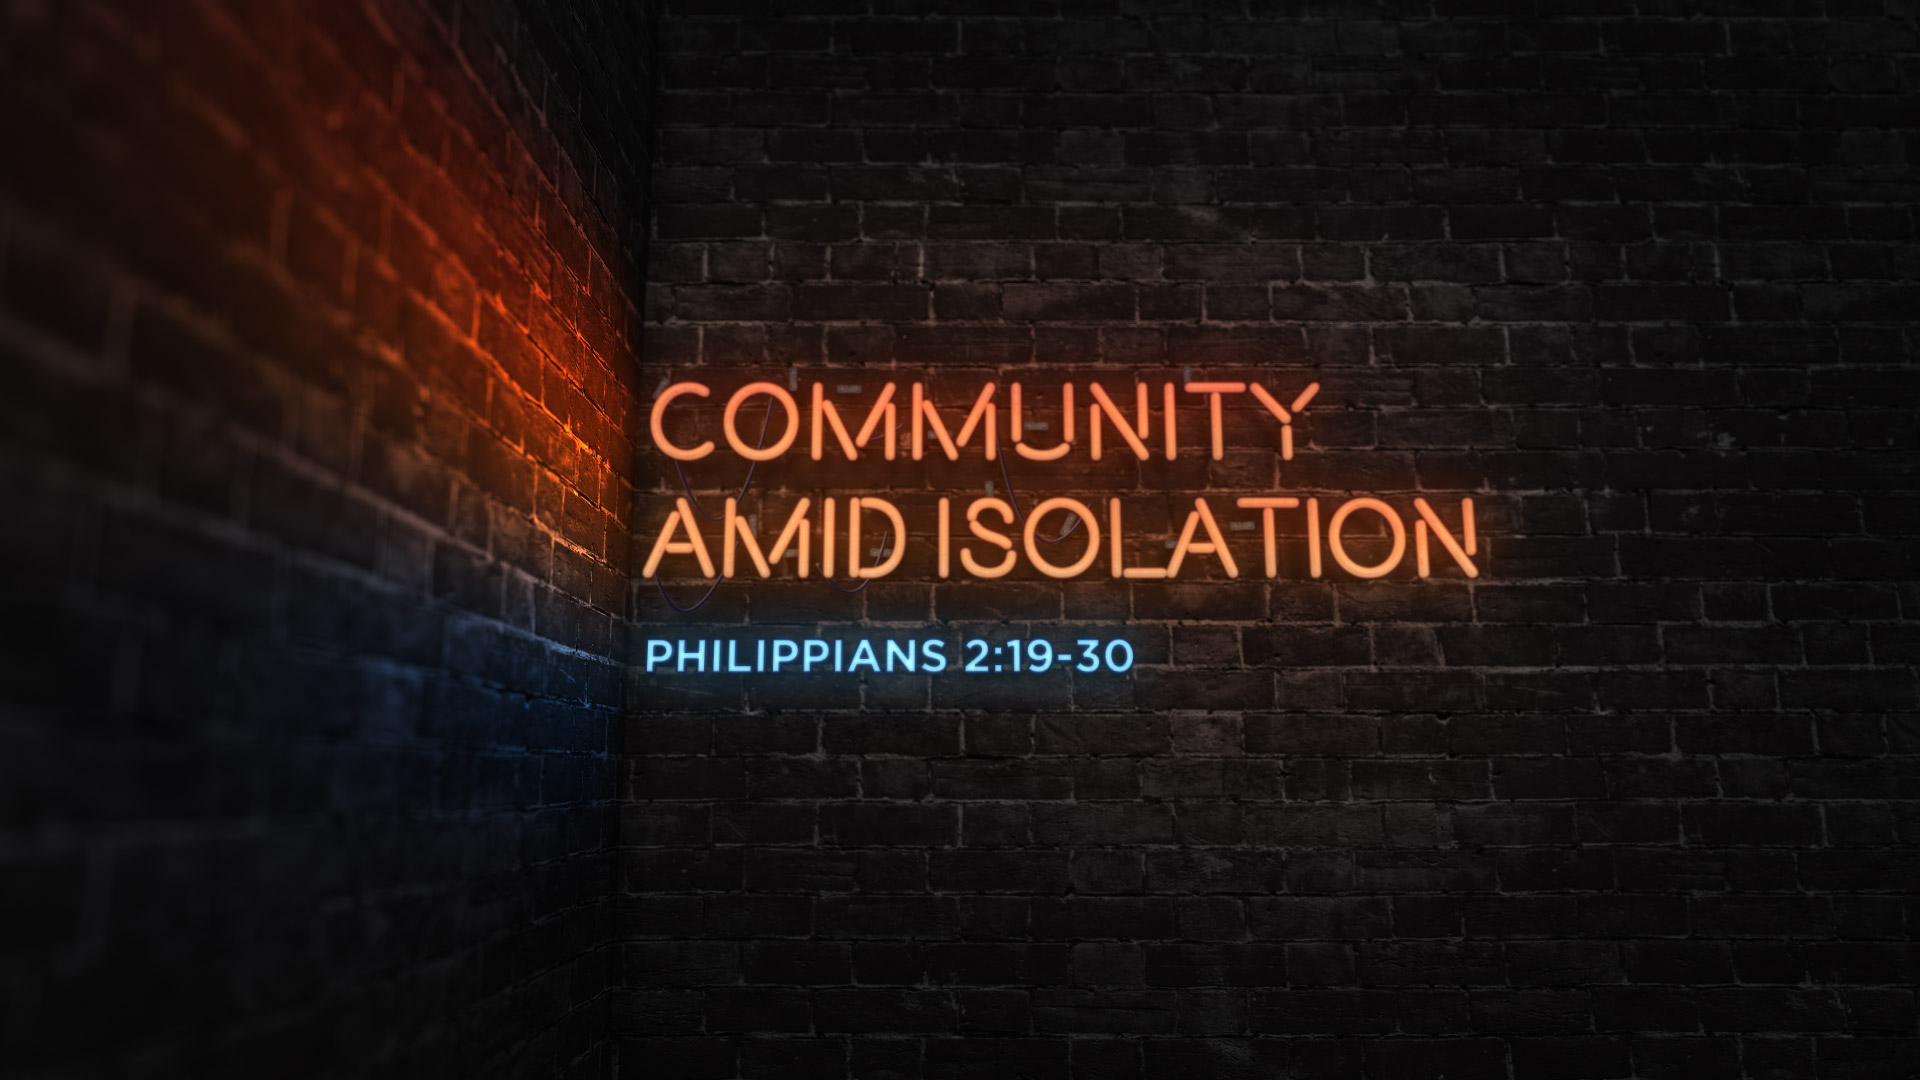 Community Amid Isolation